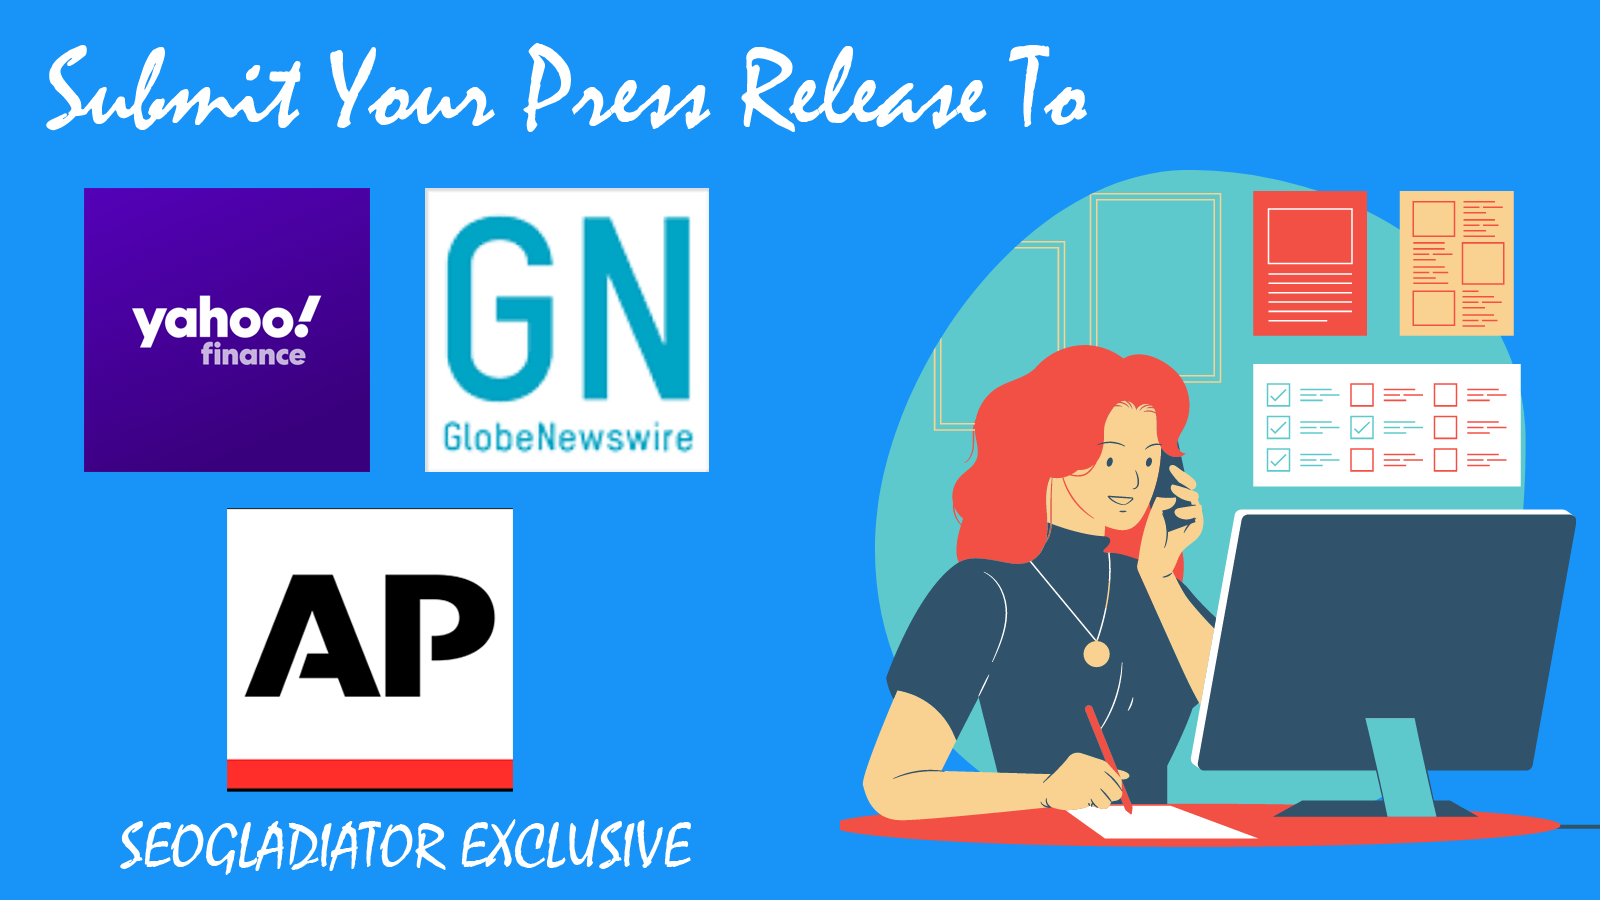 Press Release Writing and Submission to GlobeNewswire,  Yahoo Finance and APNews